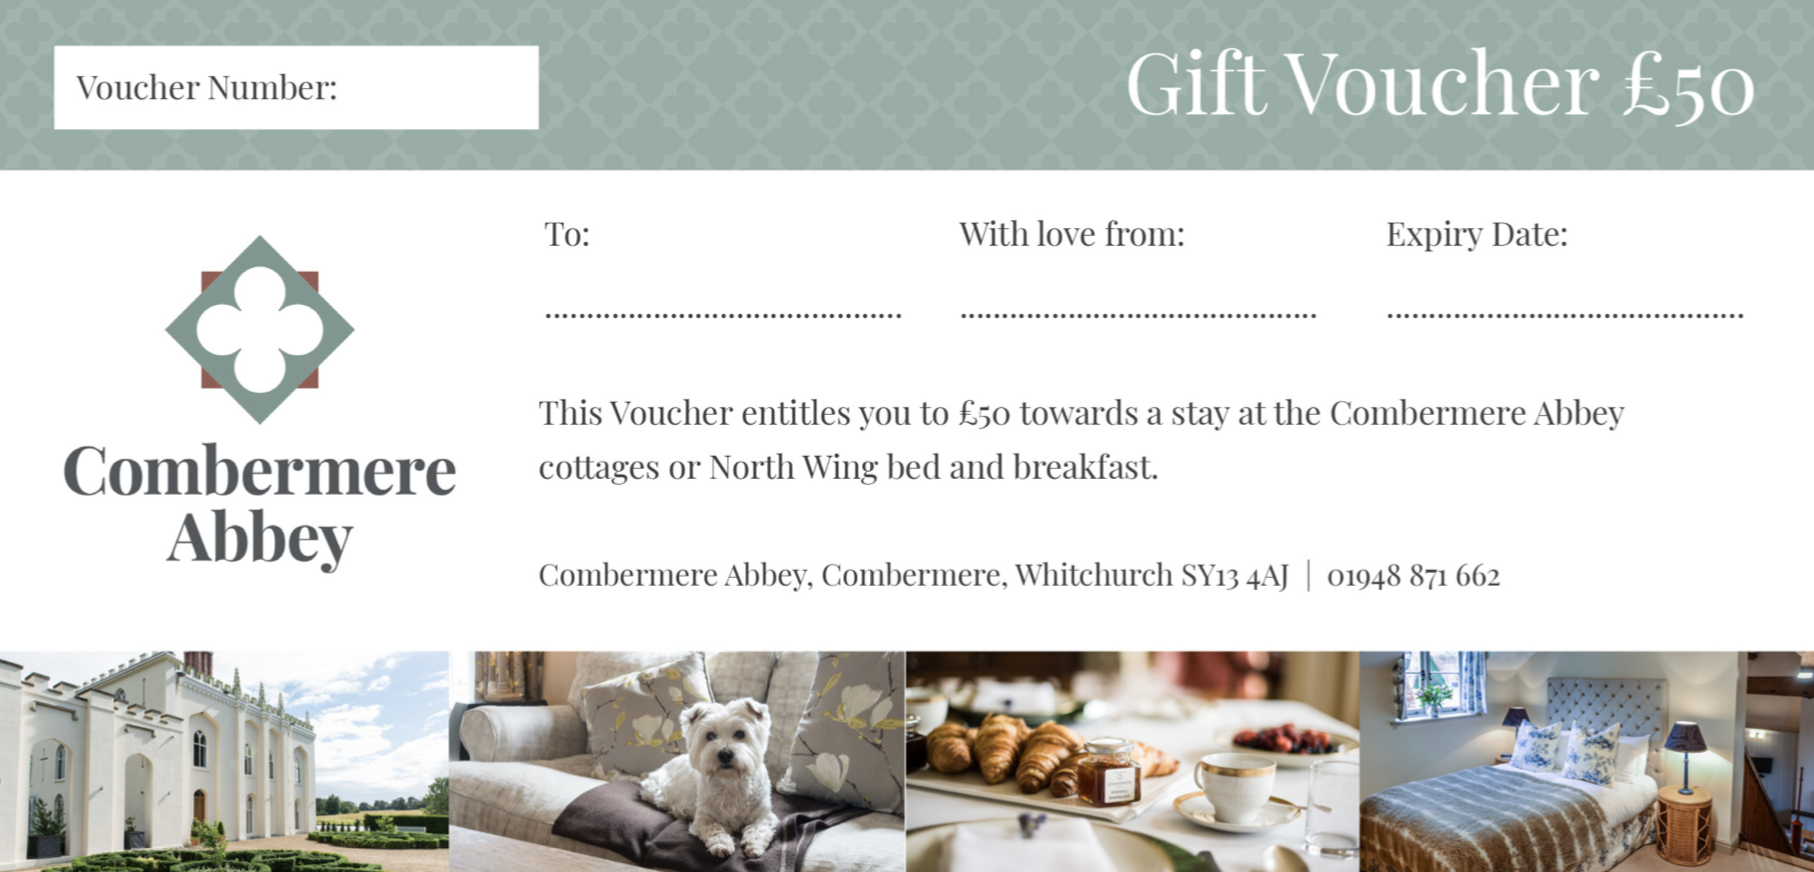 Combermere Abbey gift voucher